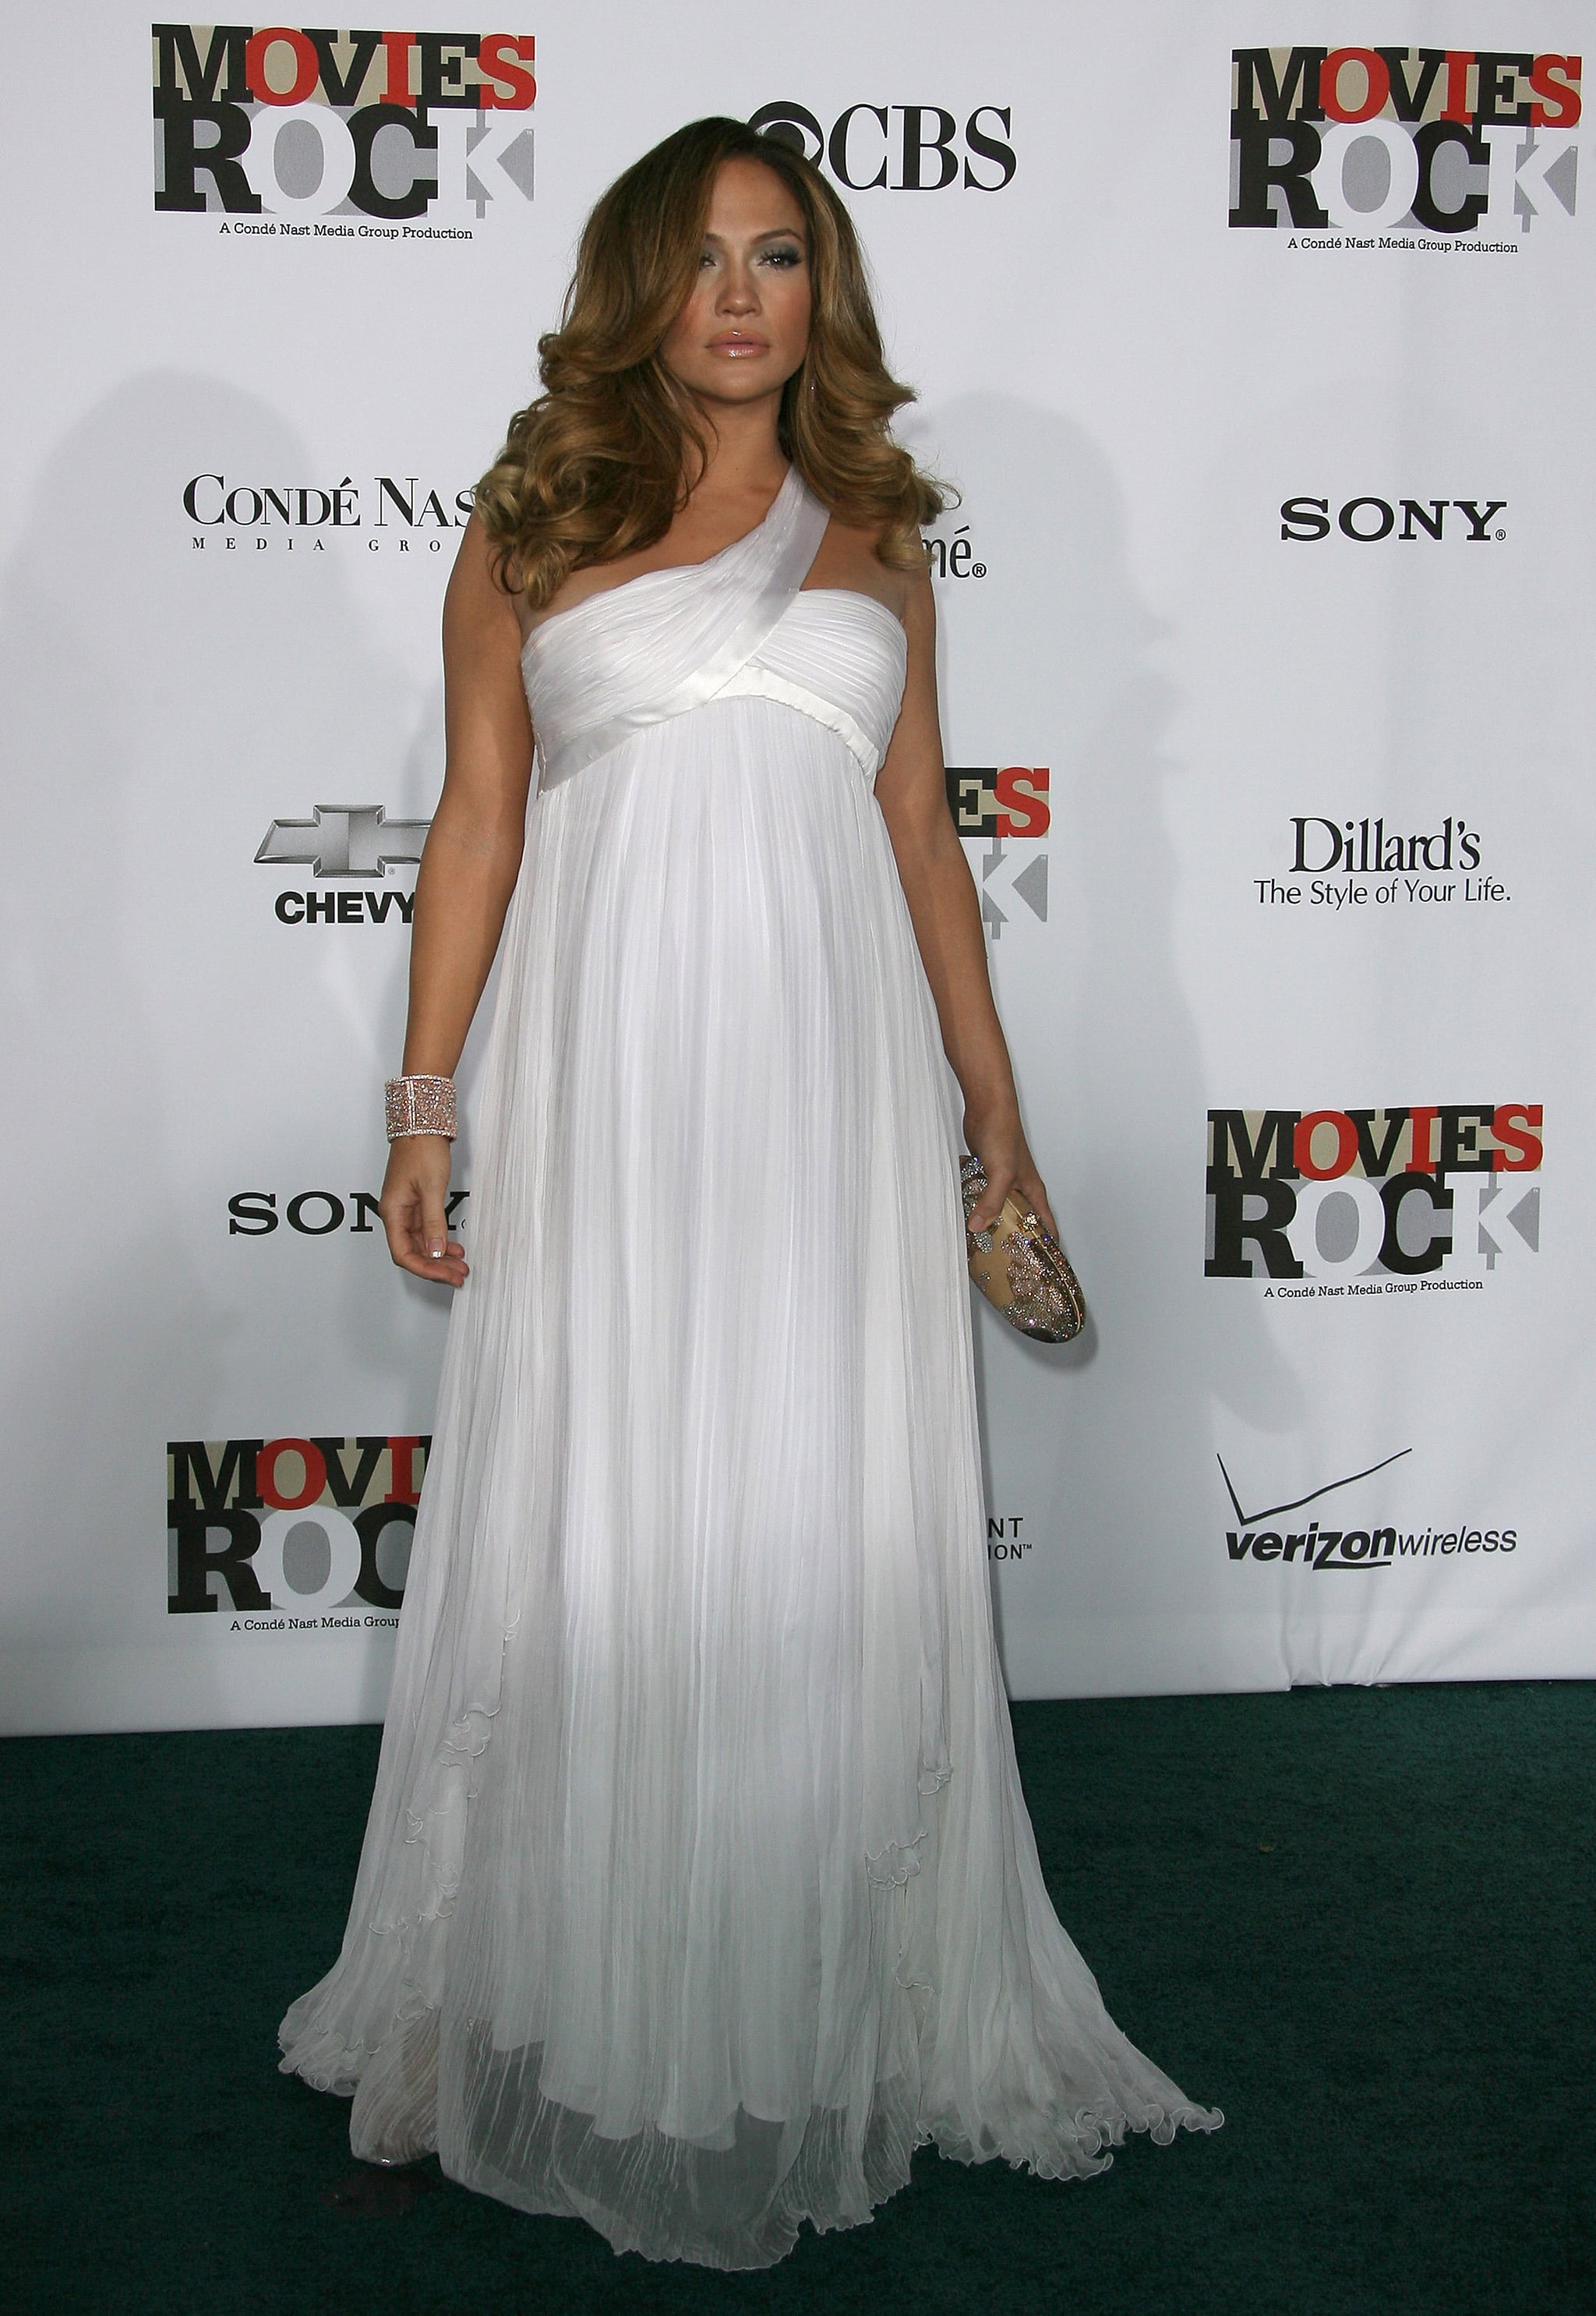 Glowing and pregnant at a 2007 Conde Nast event.